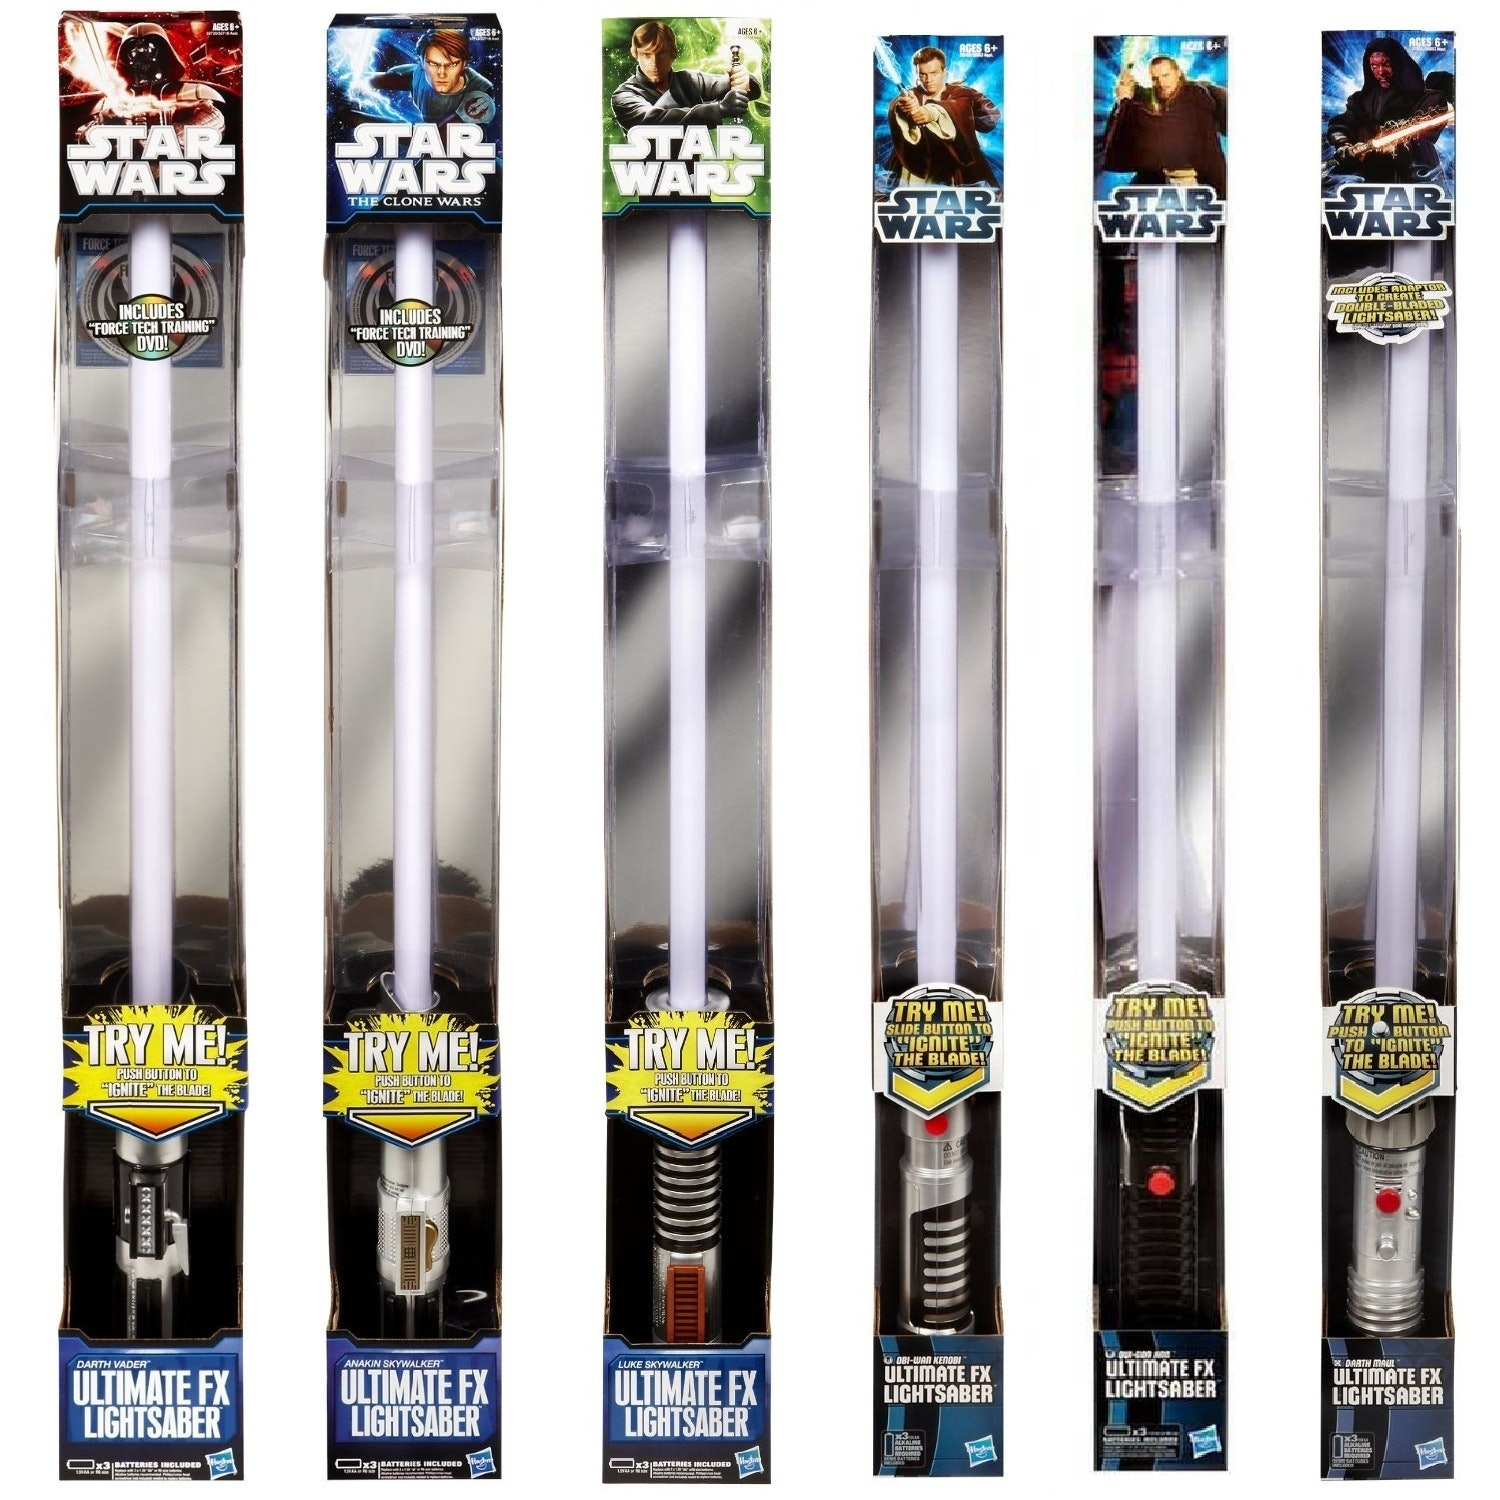 The Entire History Of Star Wars Lightsaber Toys In 12 Images